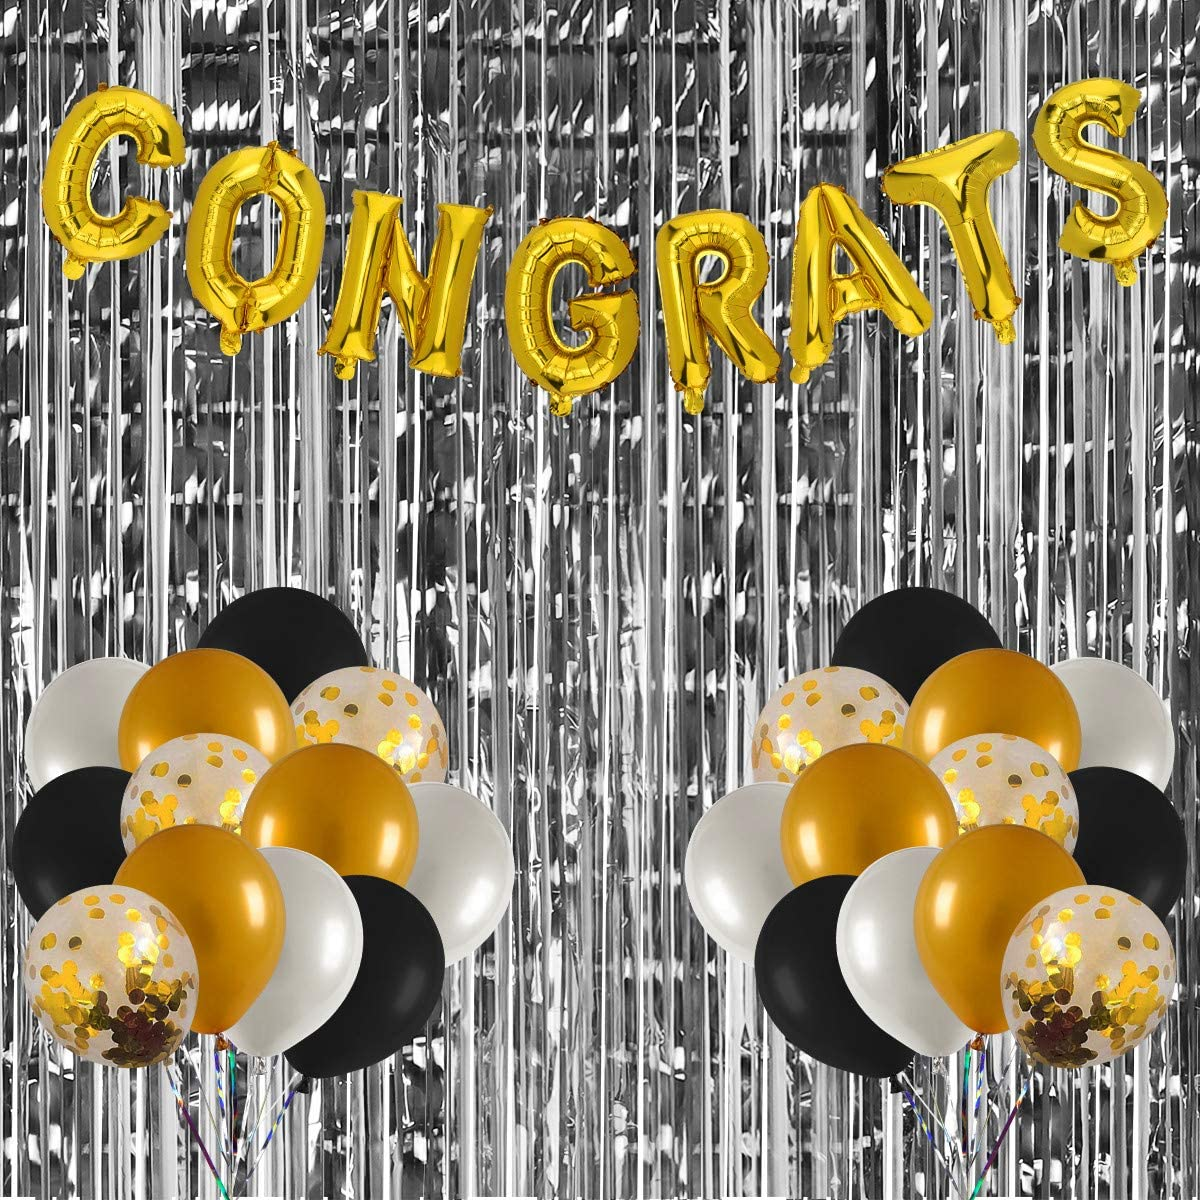 Graduation Party Decorations Supplies 2020 – 16 Inch Gold Congrats Foil Balloons,Black White Gold Confetti Balloons,Sliver Metallic Fringe Curtains - Great for Graduation Decorations, Wedding Engagement Bachelorette Bridal Baby Shower Party Supplies